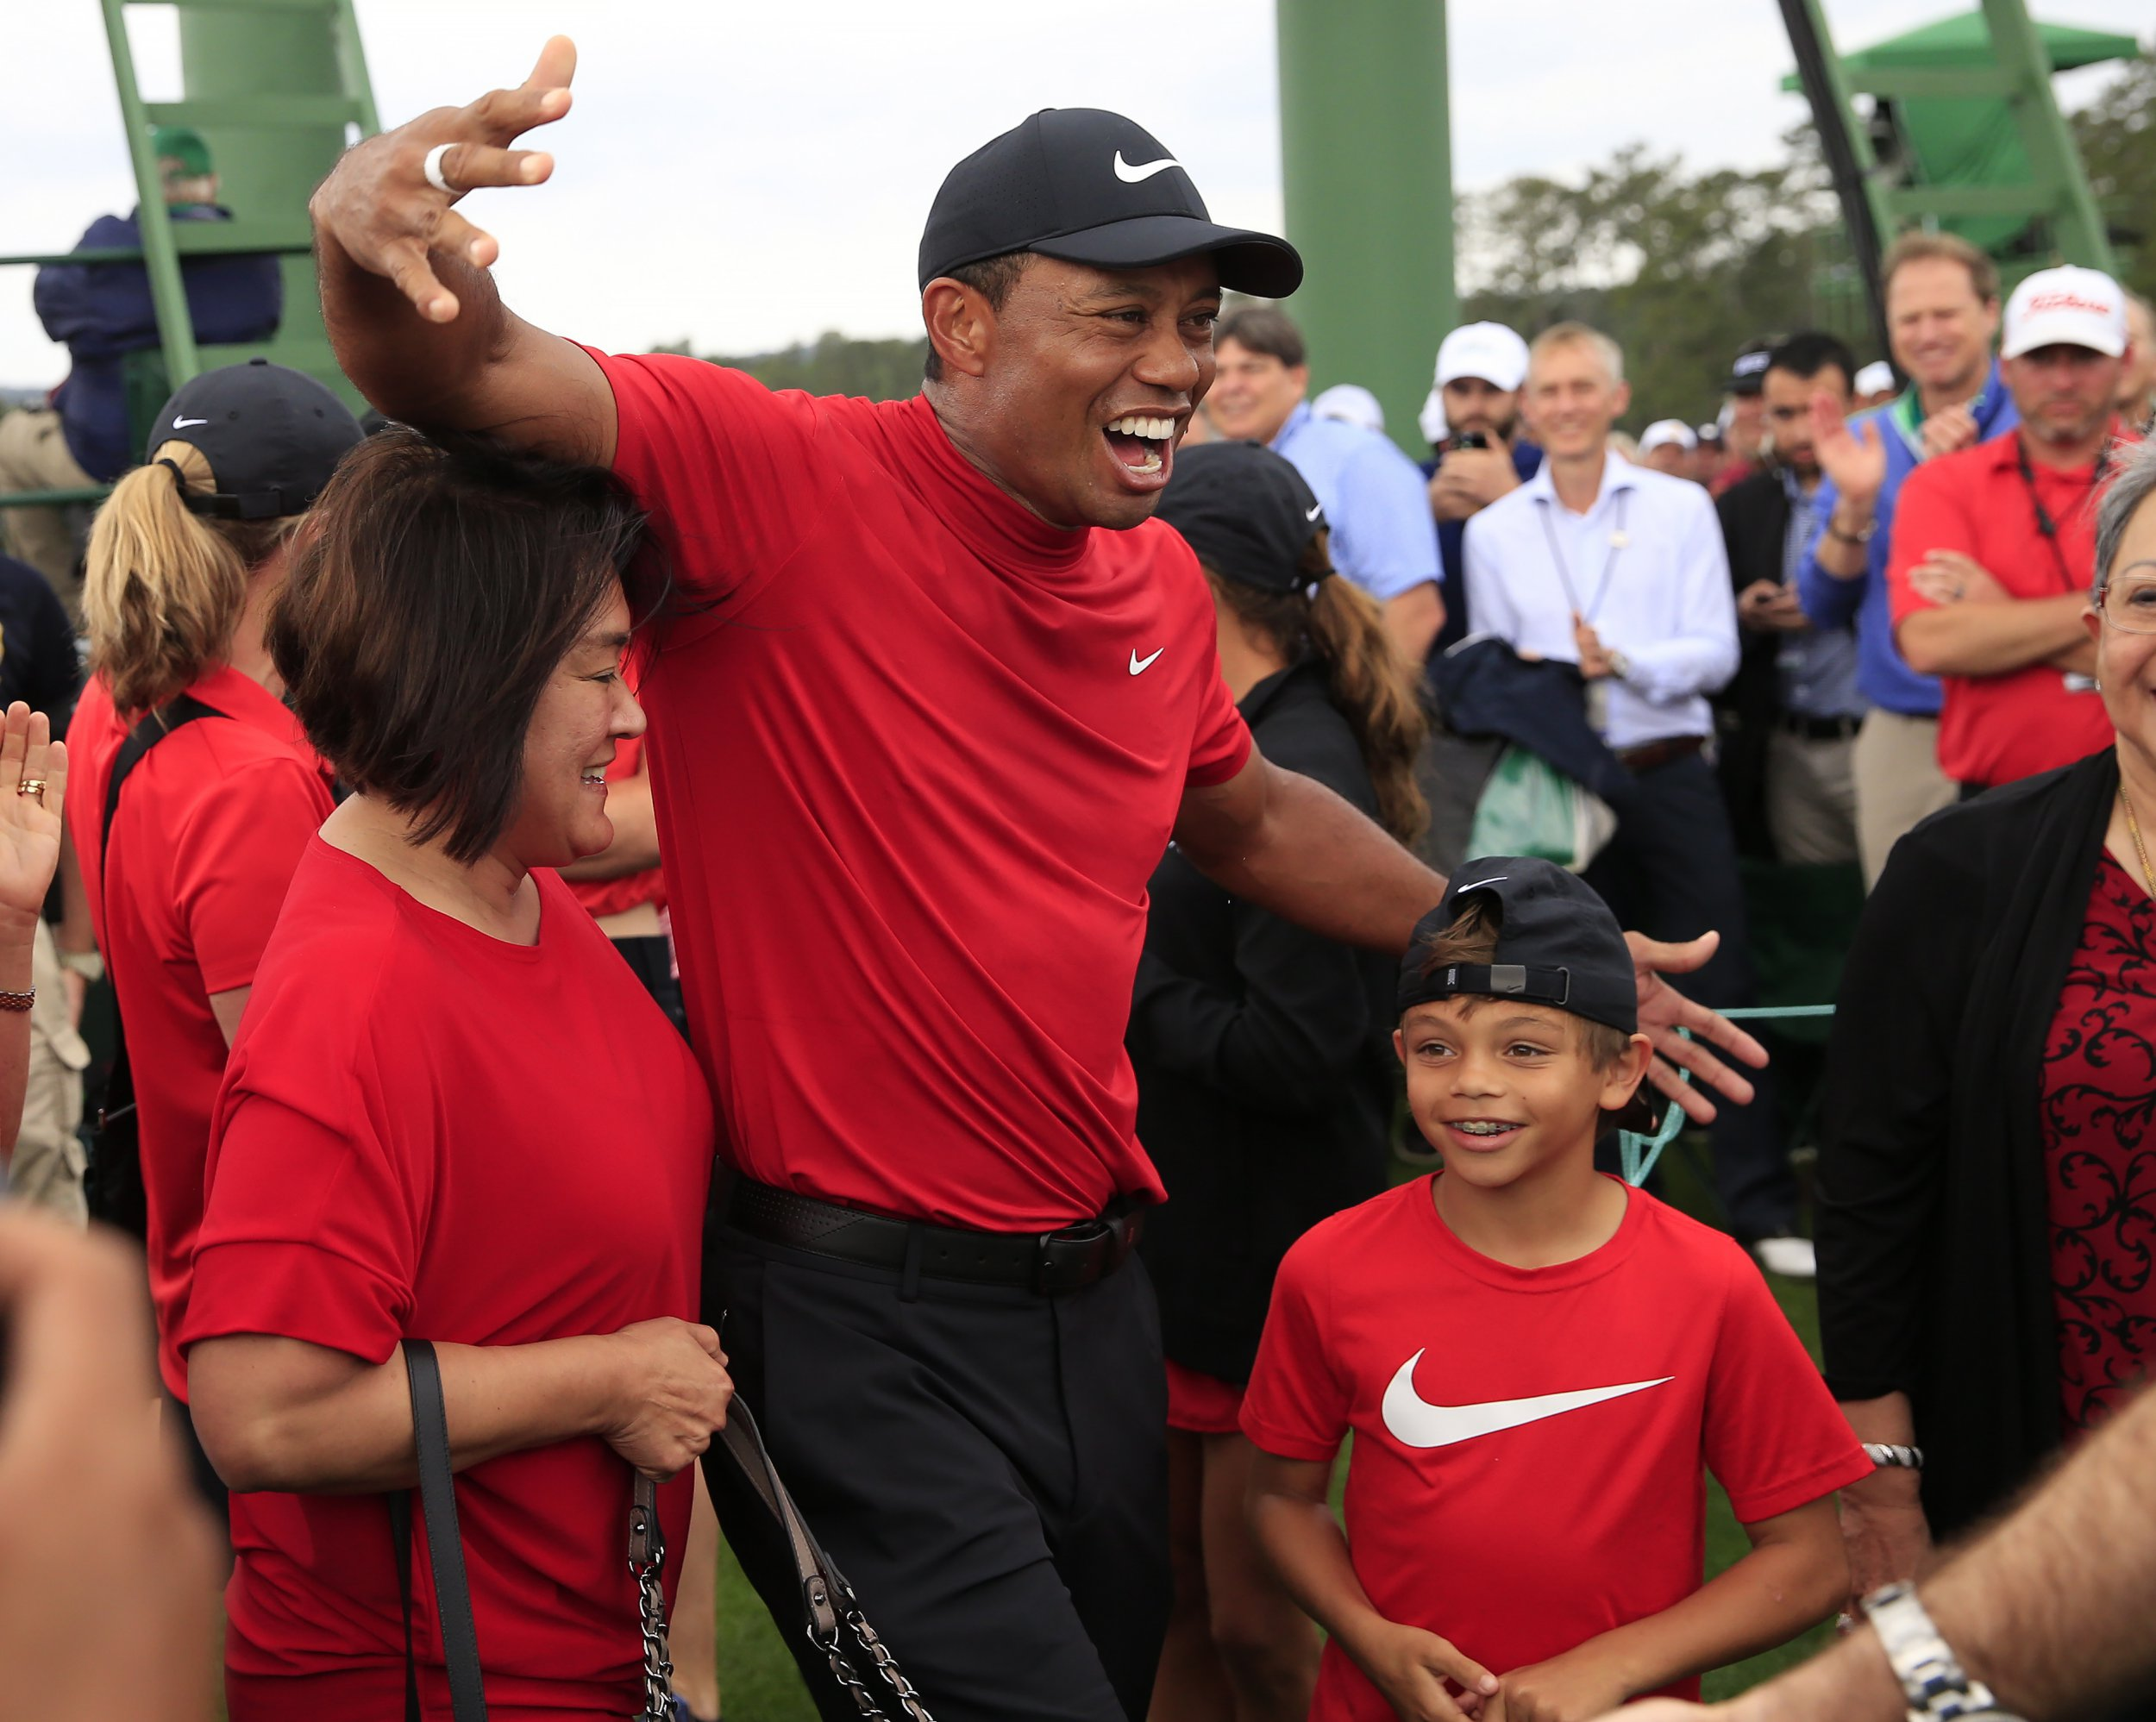 Tiger Woods ranks latest Masters win and reacts to winning dramatic 15th Major